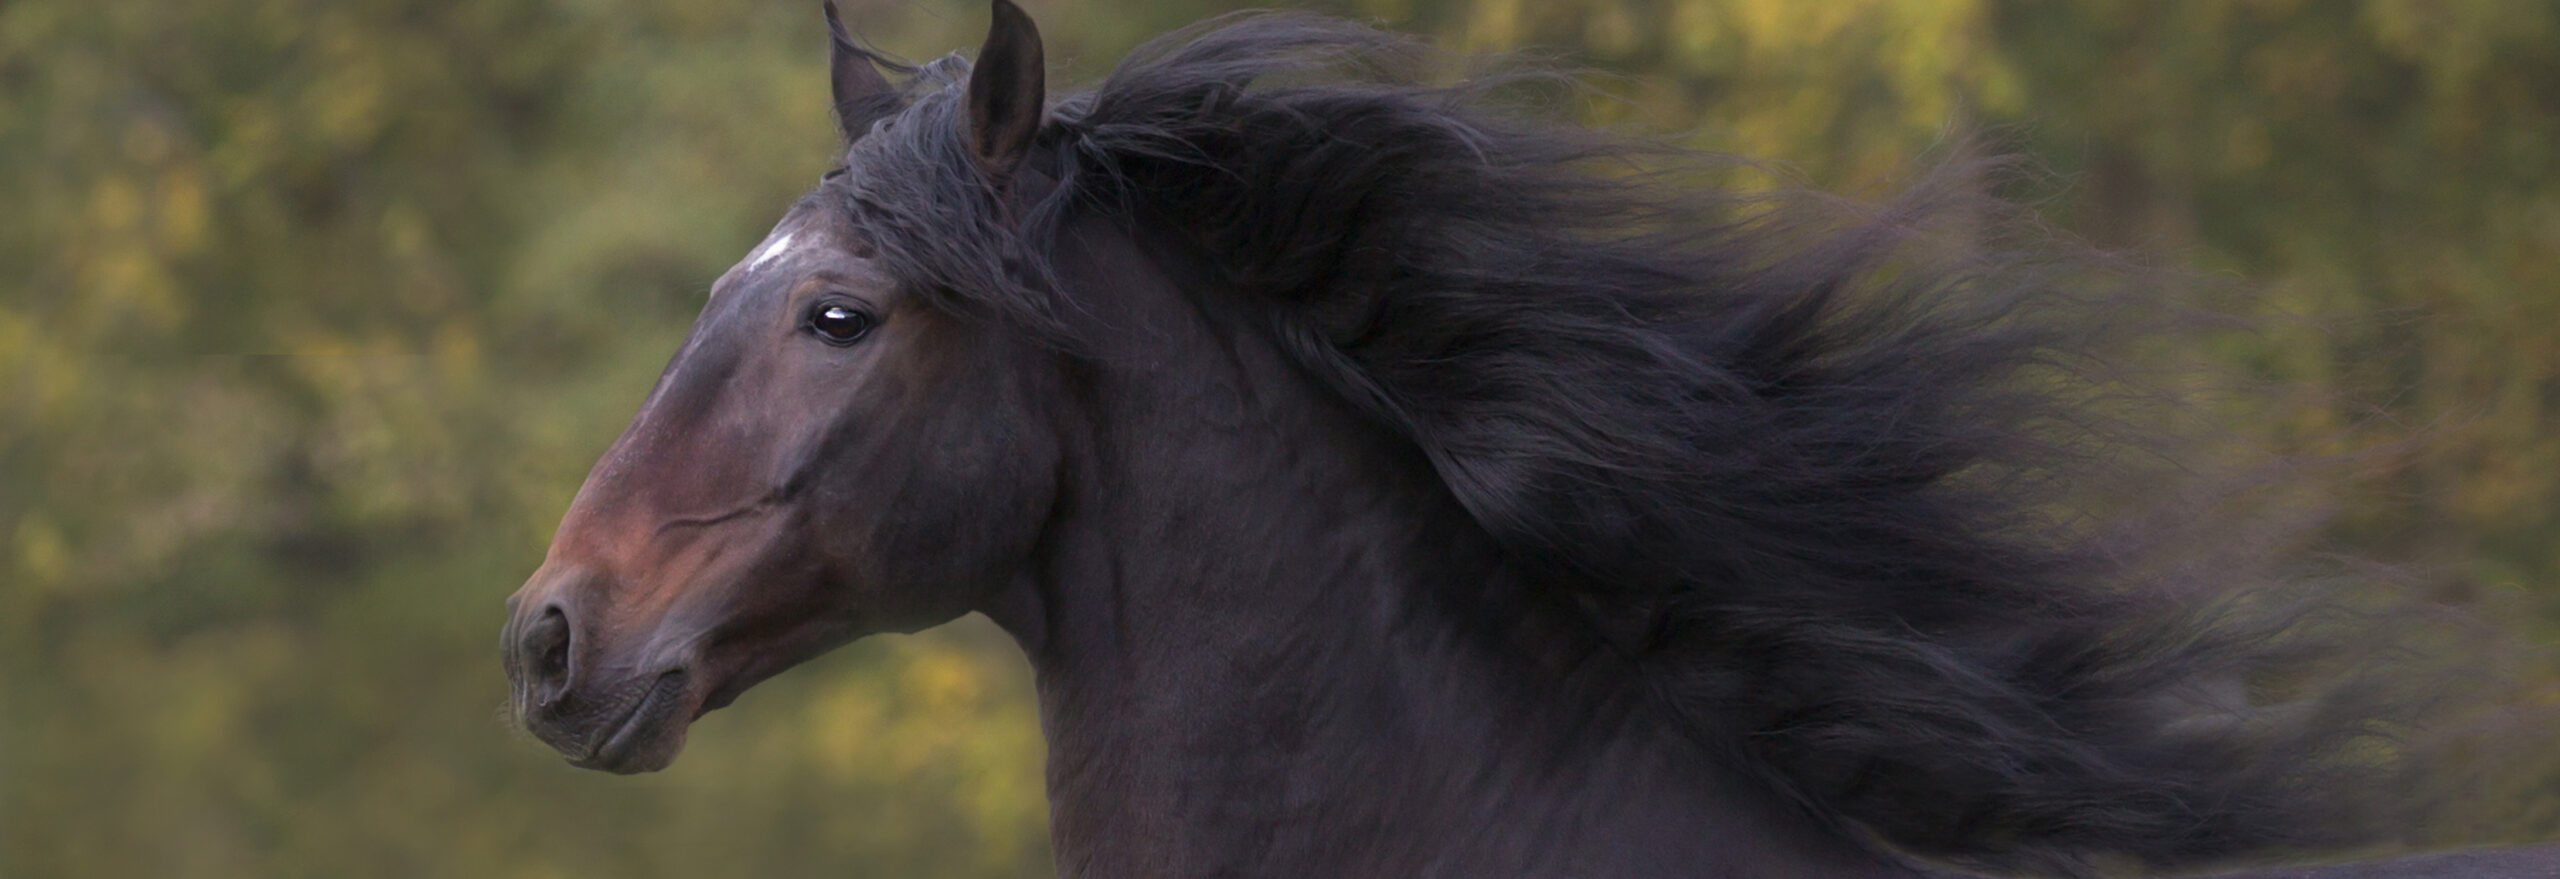 Andalusian Horse with Mane Flying